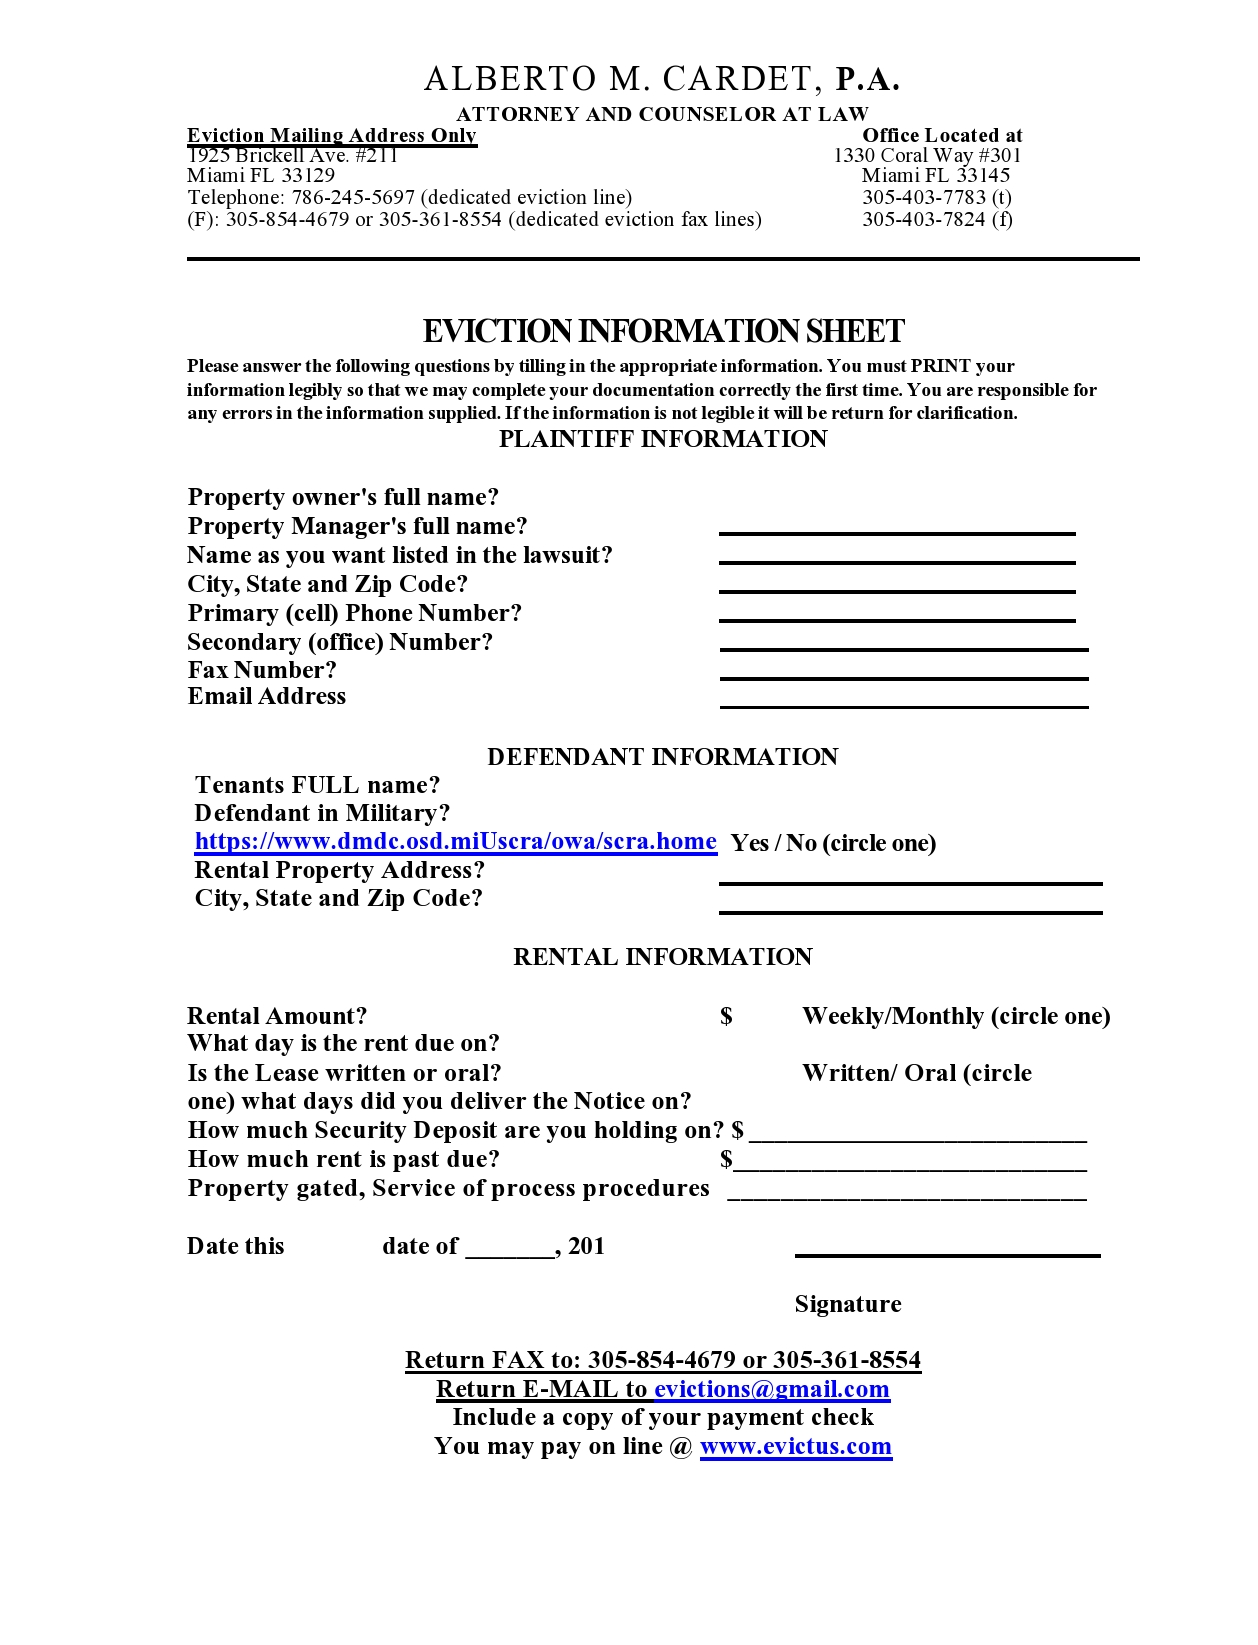 Eviction Information Sheet Representation And Fee Agreement